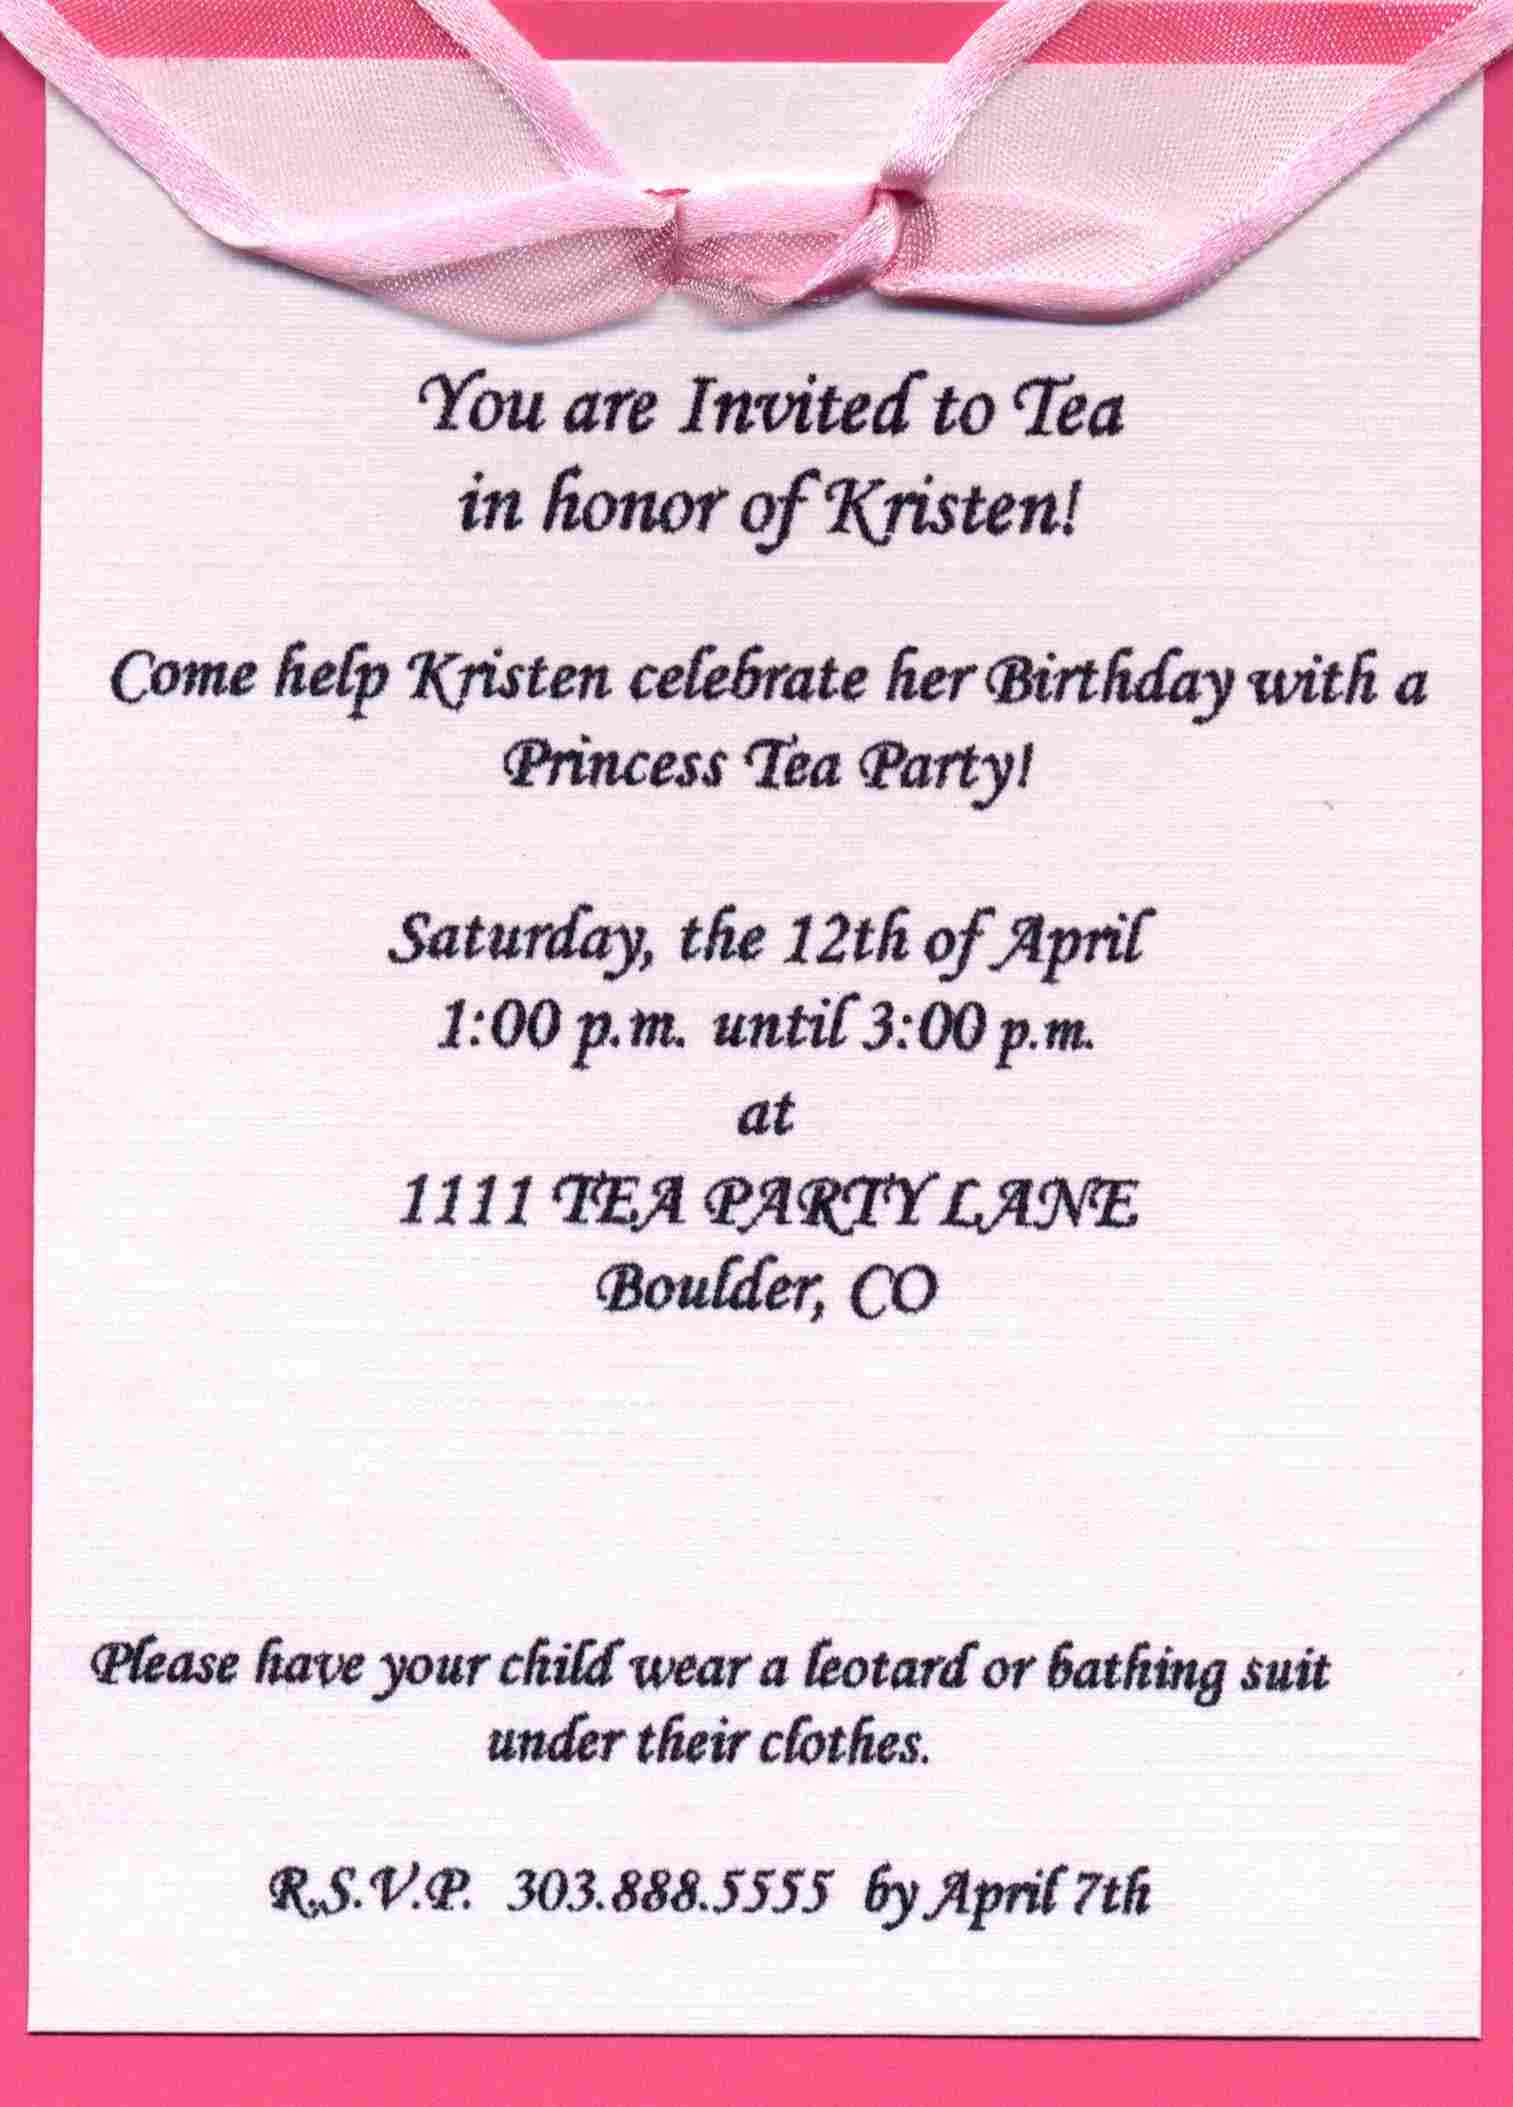 The invitation below is for a birthday, theme selected was a Princess